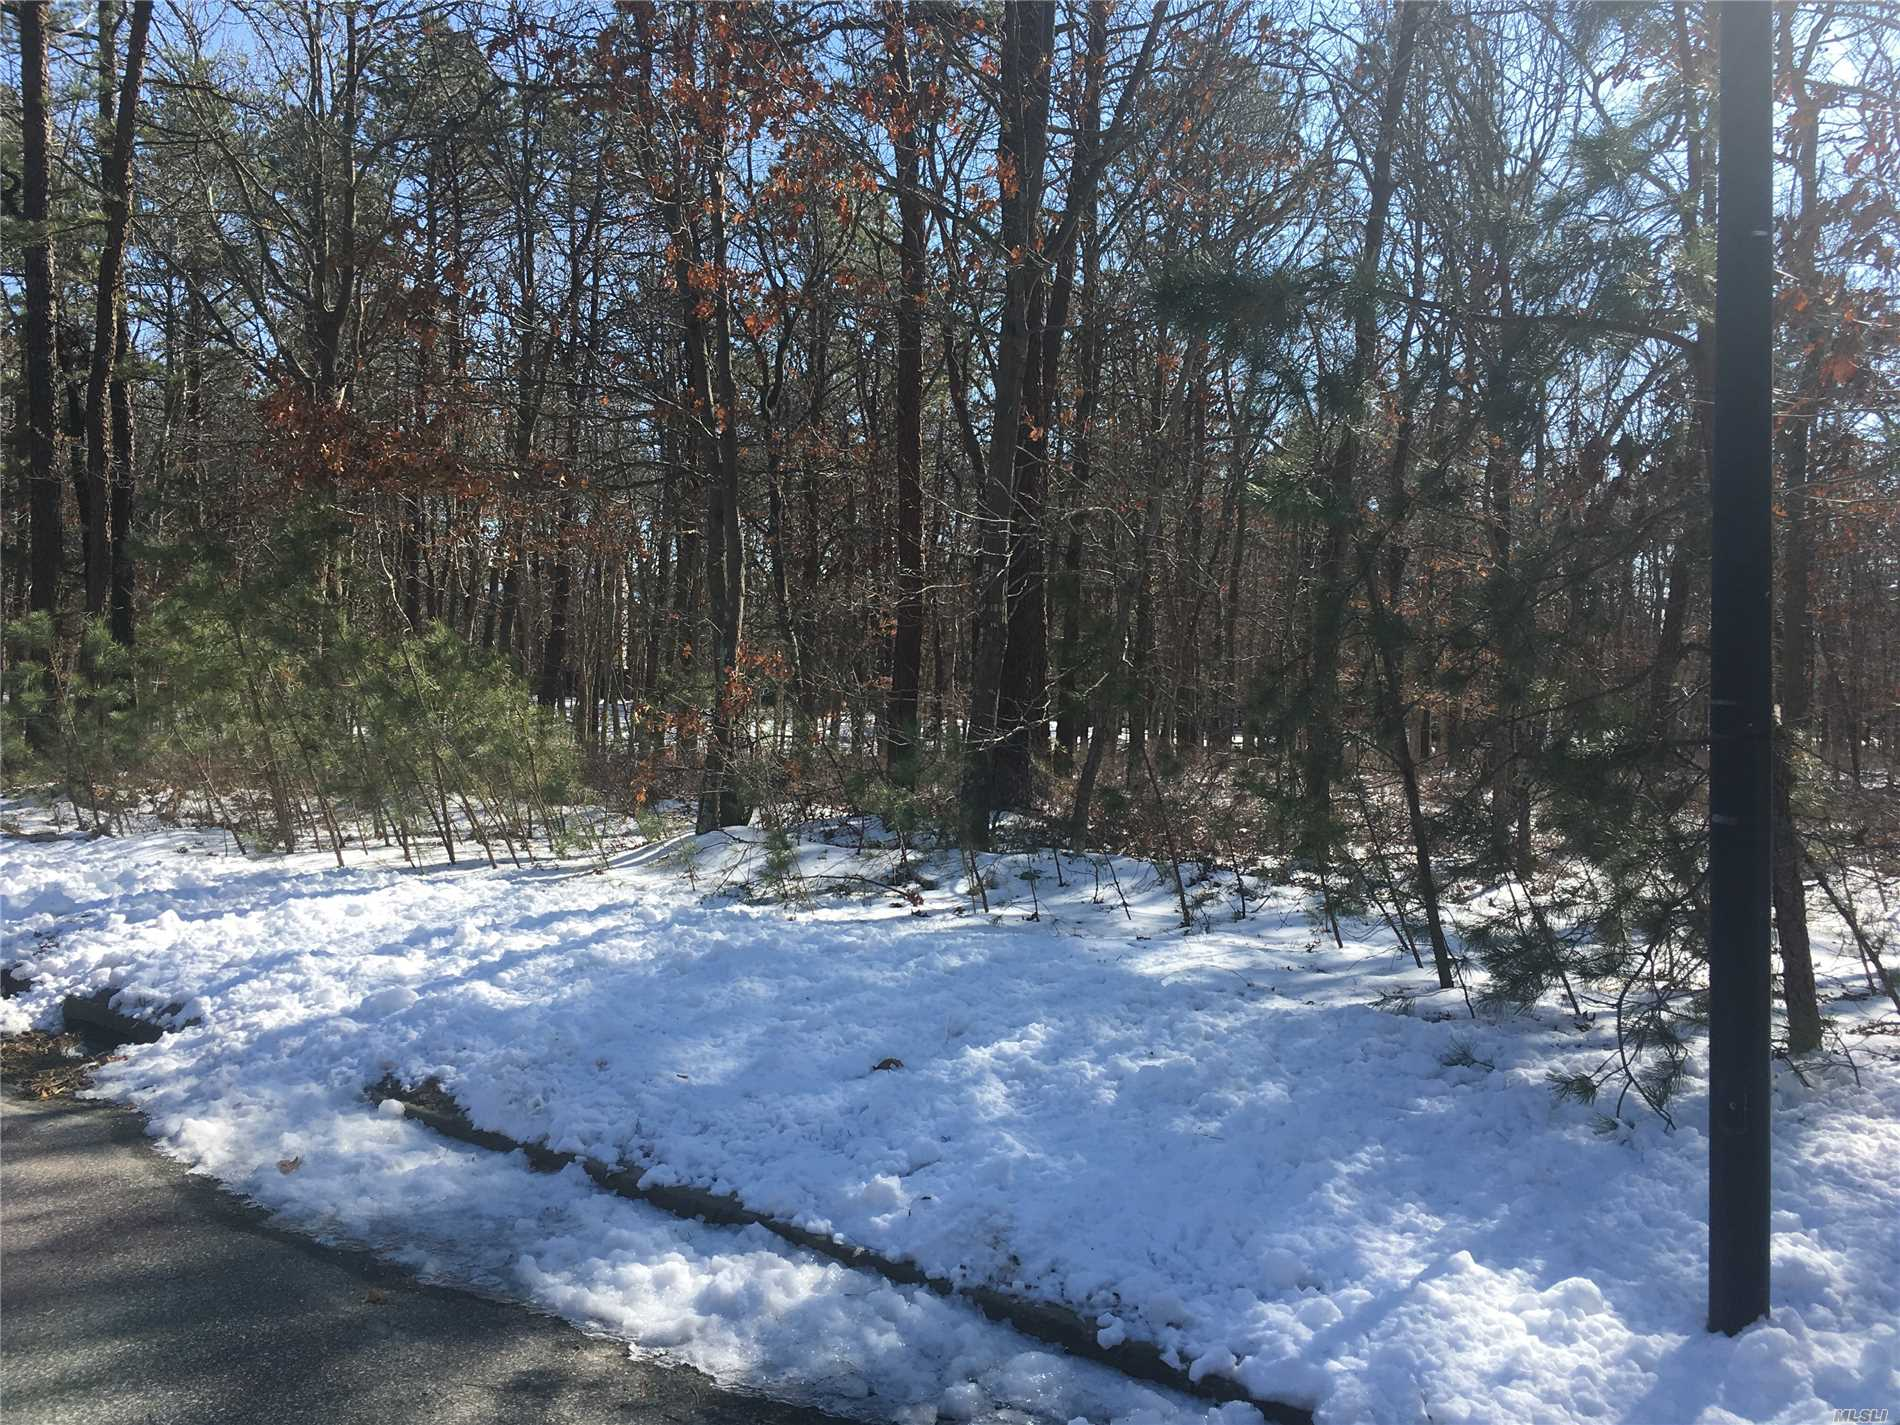 Dream acreage for your dream home. Wooded 5+ acres. Located in the heart of Manorville. Road frontage on Silas Carter and access at end of Davidson Ct. Close to all the east end has to offer.